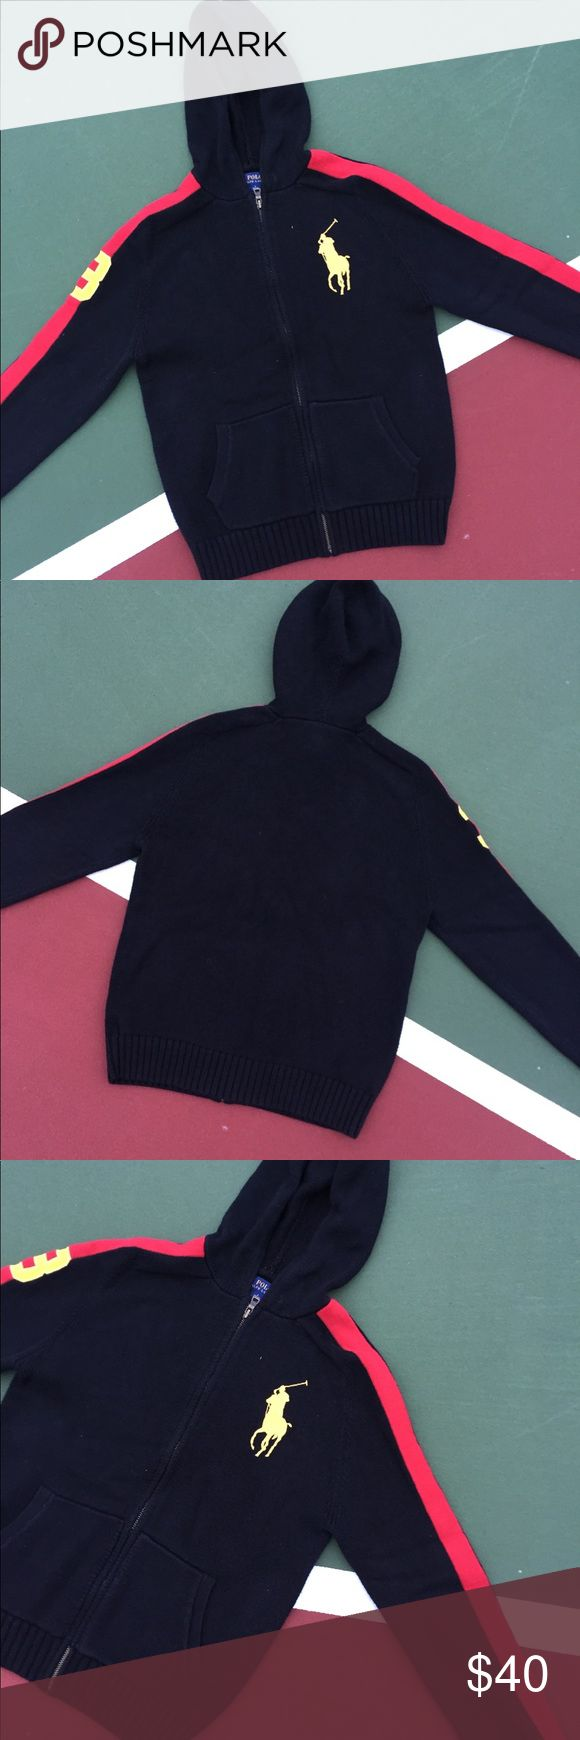 Polo Jacket Polo Jacket In Black.  Brand: Polo Size: Men's 2X-Small/ Women's X-Small Condition: 10/10  Comments: Thread Count Is Crazy On The Golden Horseman Which Is Complimented By The Black Background & Red Stripes On Either Shoulder! Polo by Ralph Lauren Jackets & Coats